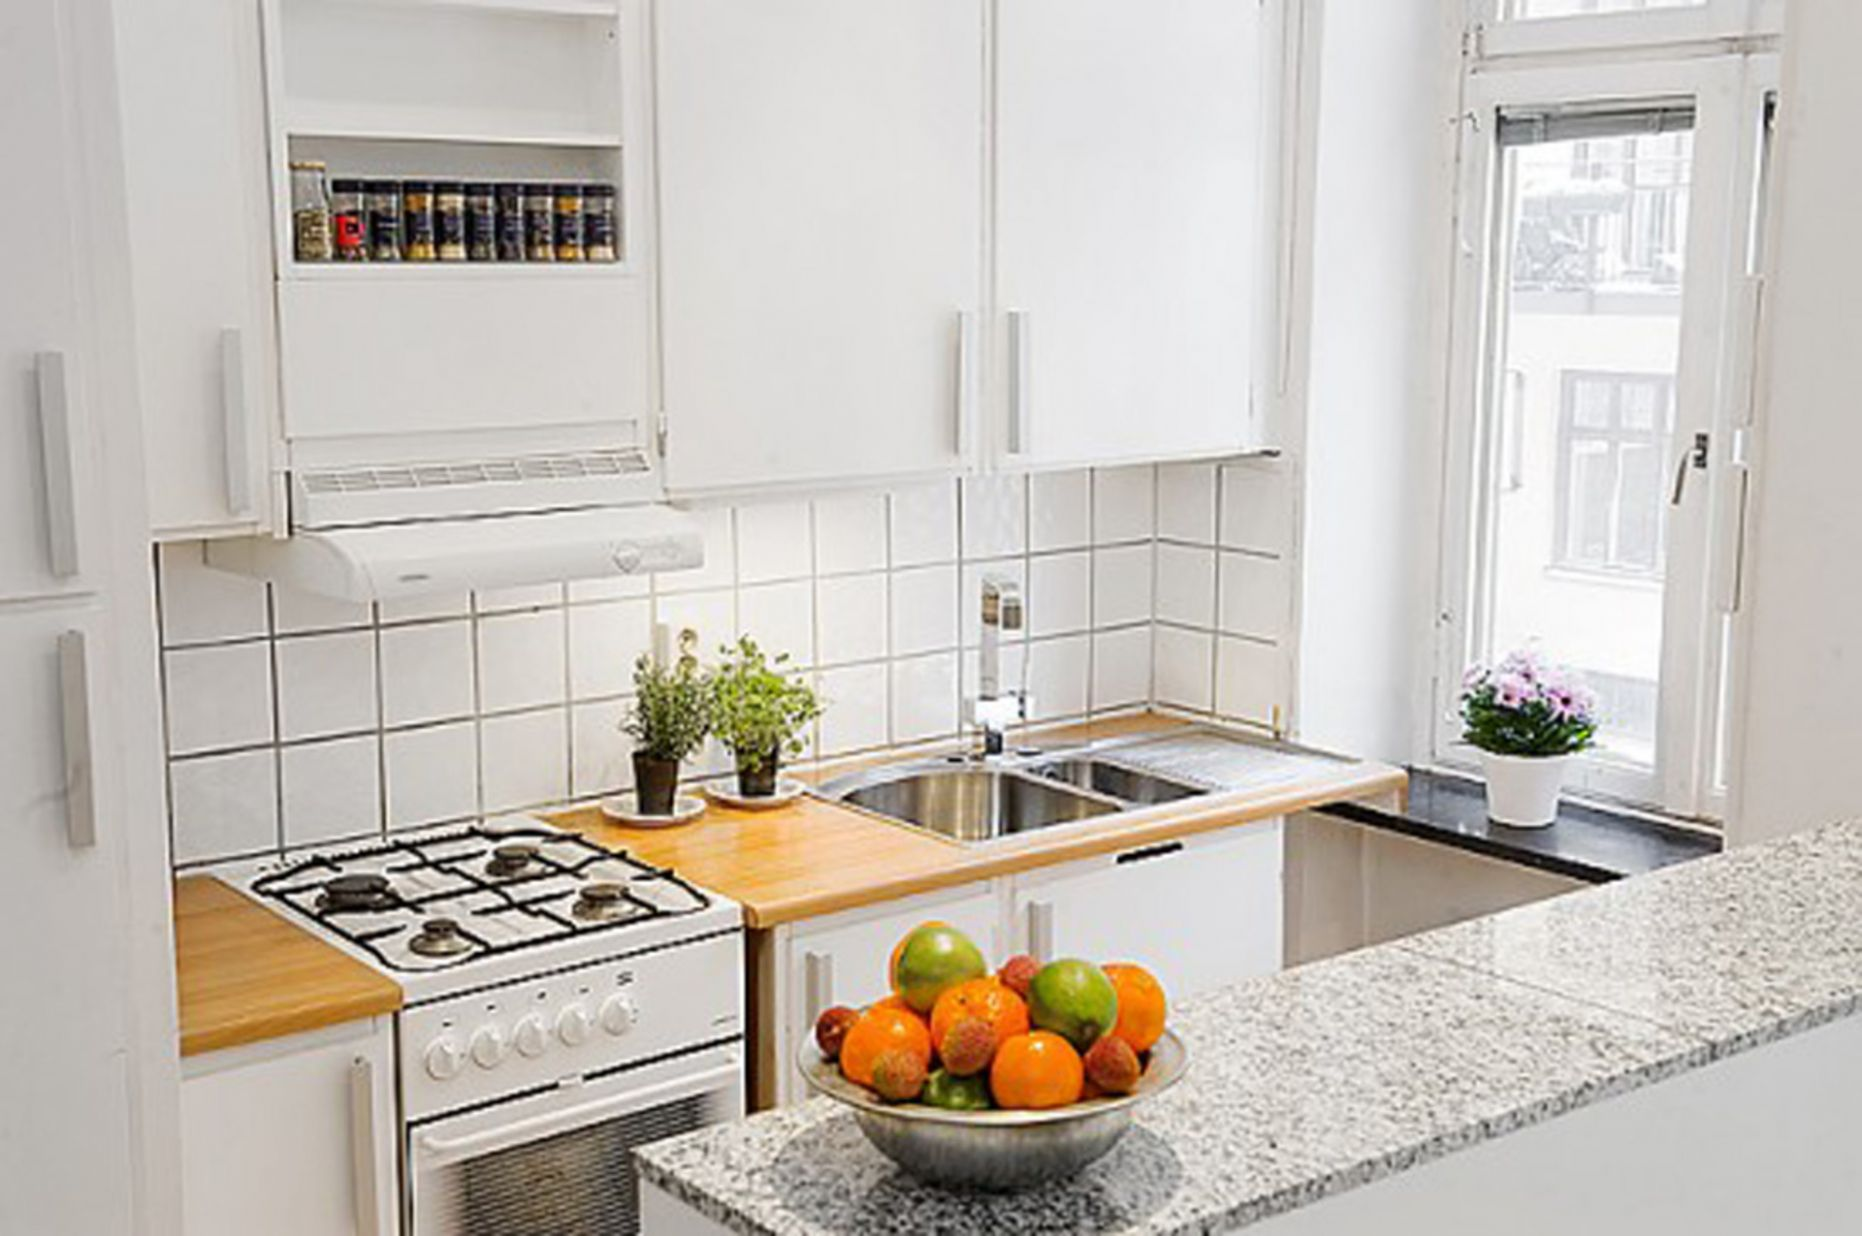 Amazing Of Incridible Small Apartment Kitchen Decor Ideas They ..